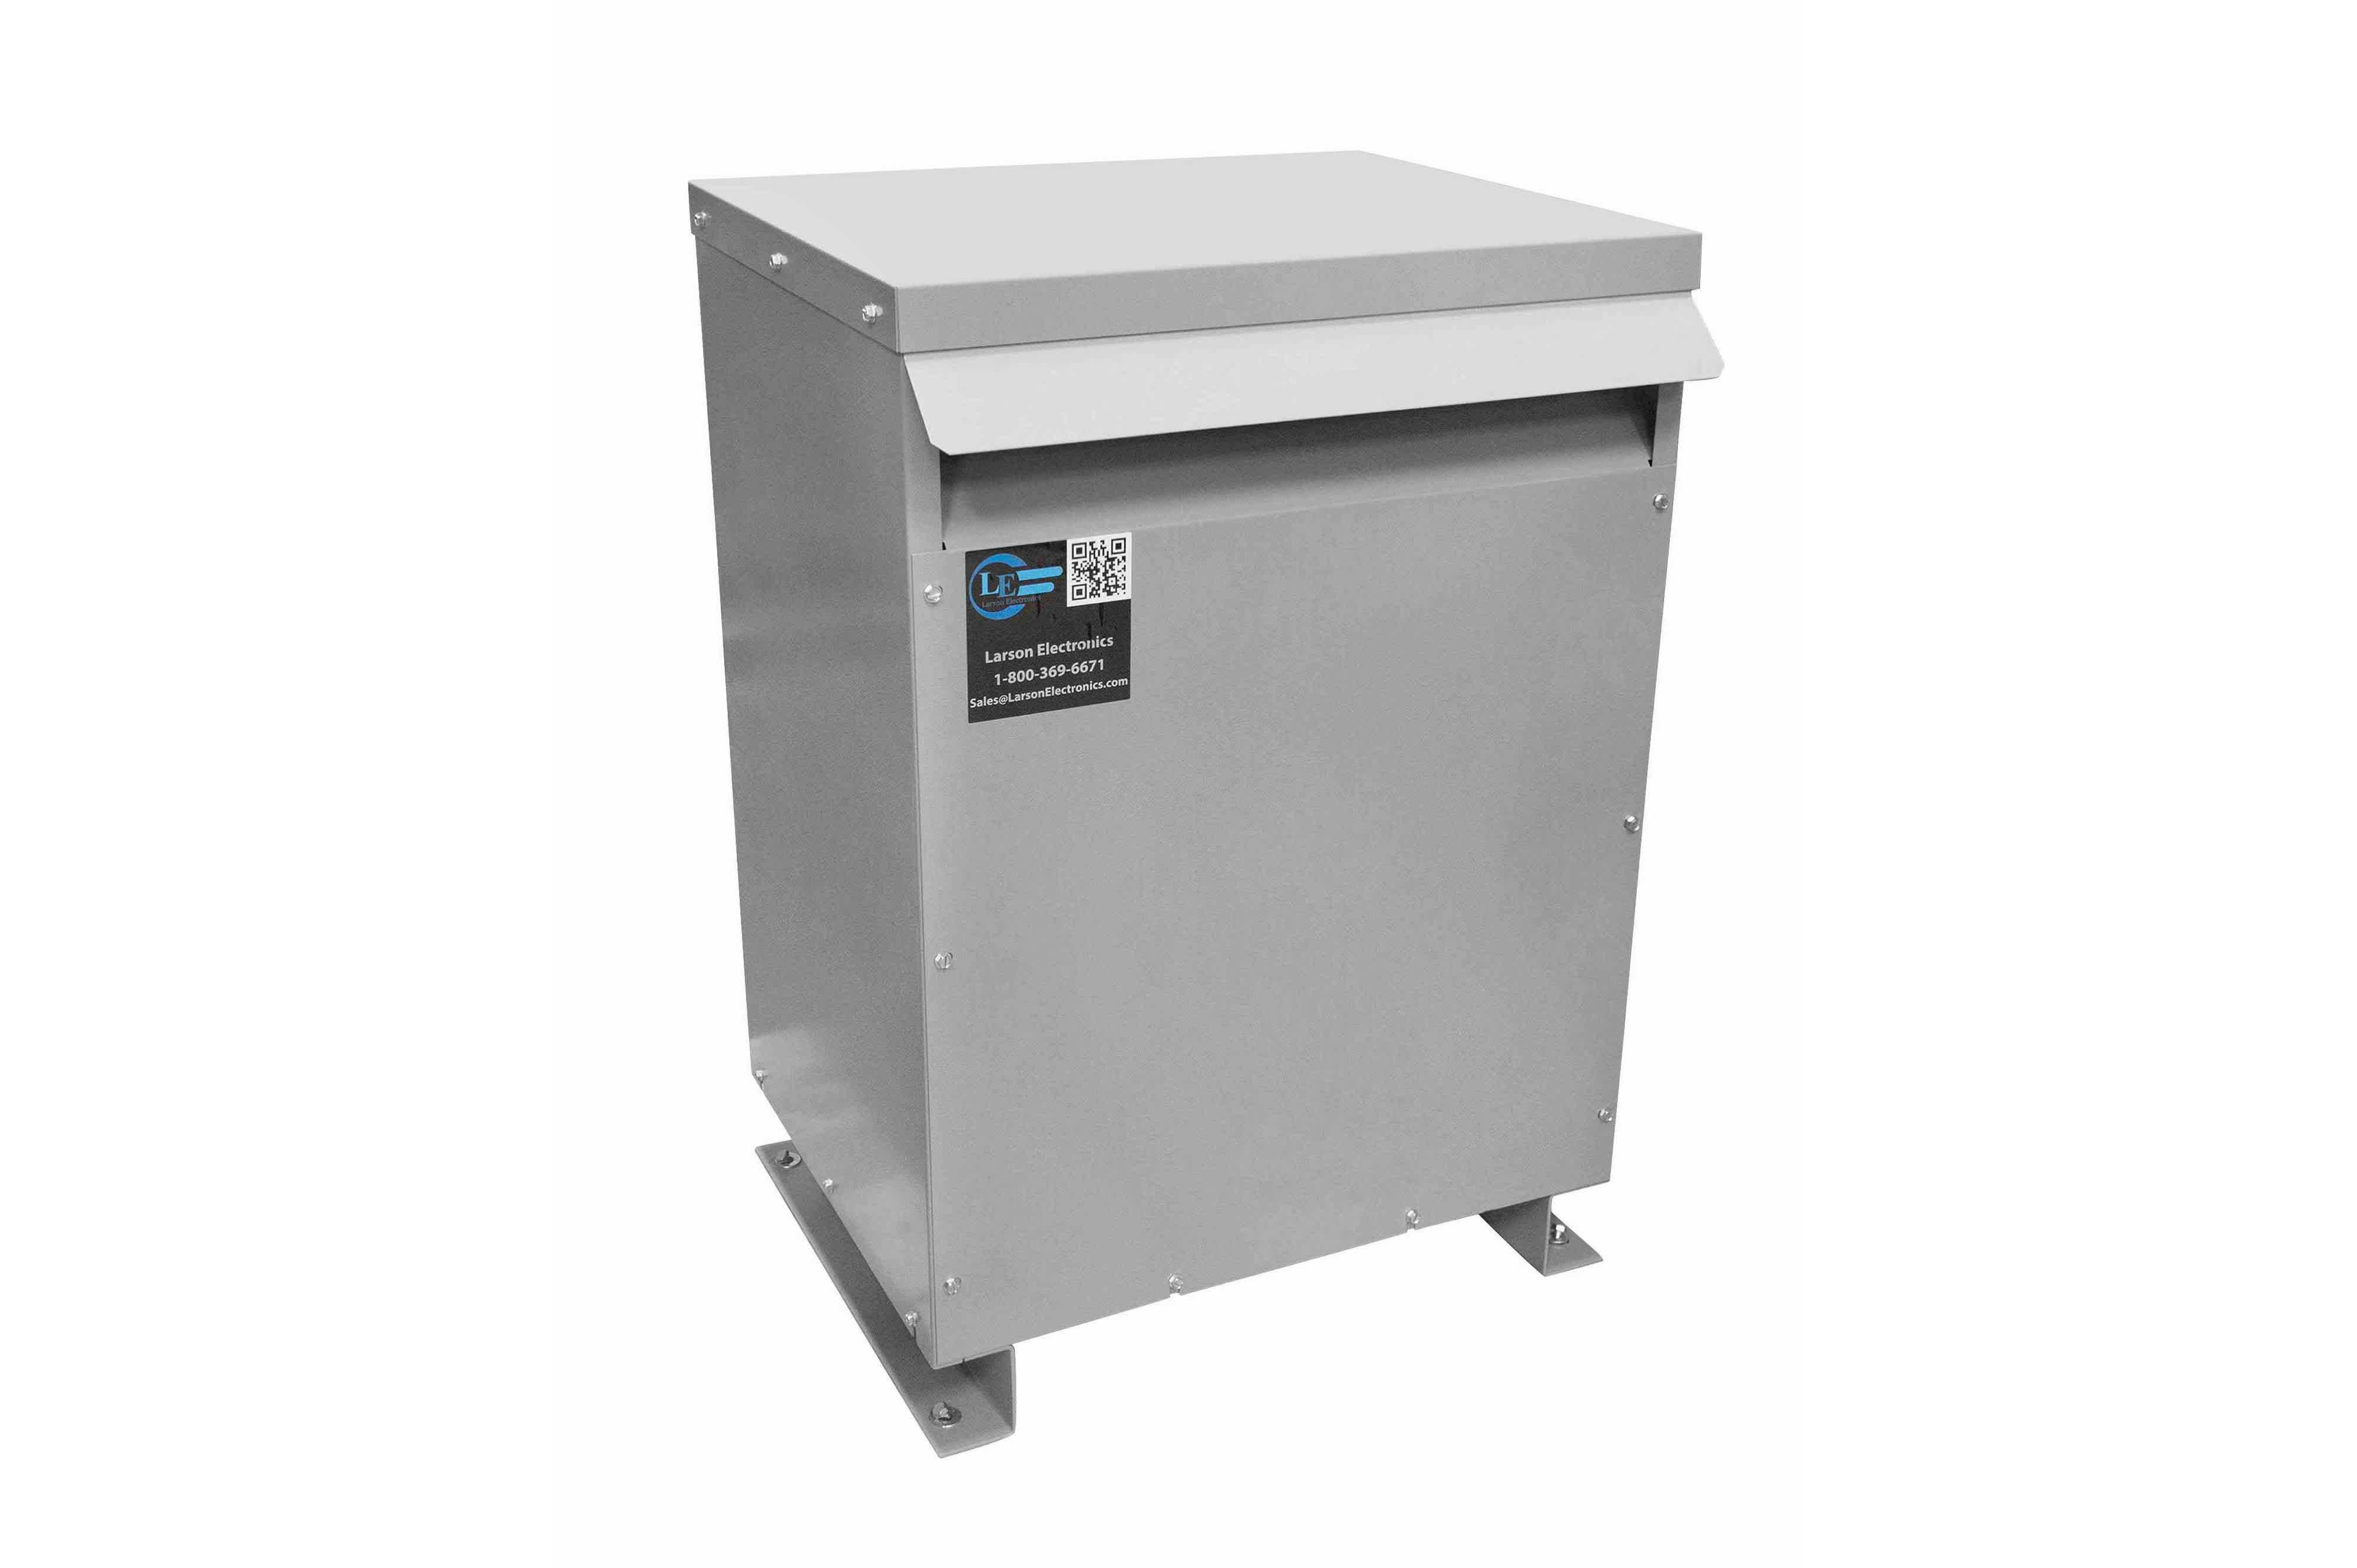 75 kVA 3PH Isolation Transformer, 440V Delta Primary, 208V Delta Secondary, N3R, Ventilated, 60 Hz